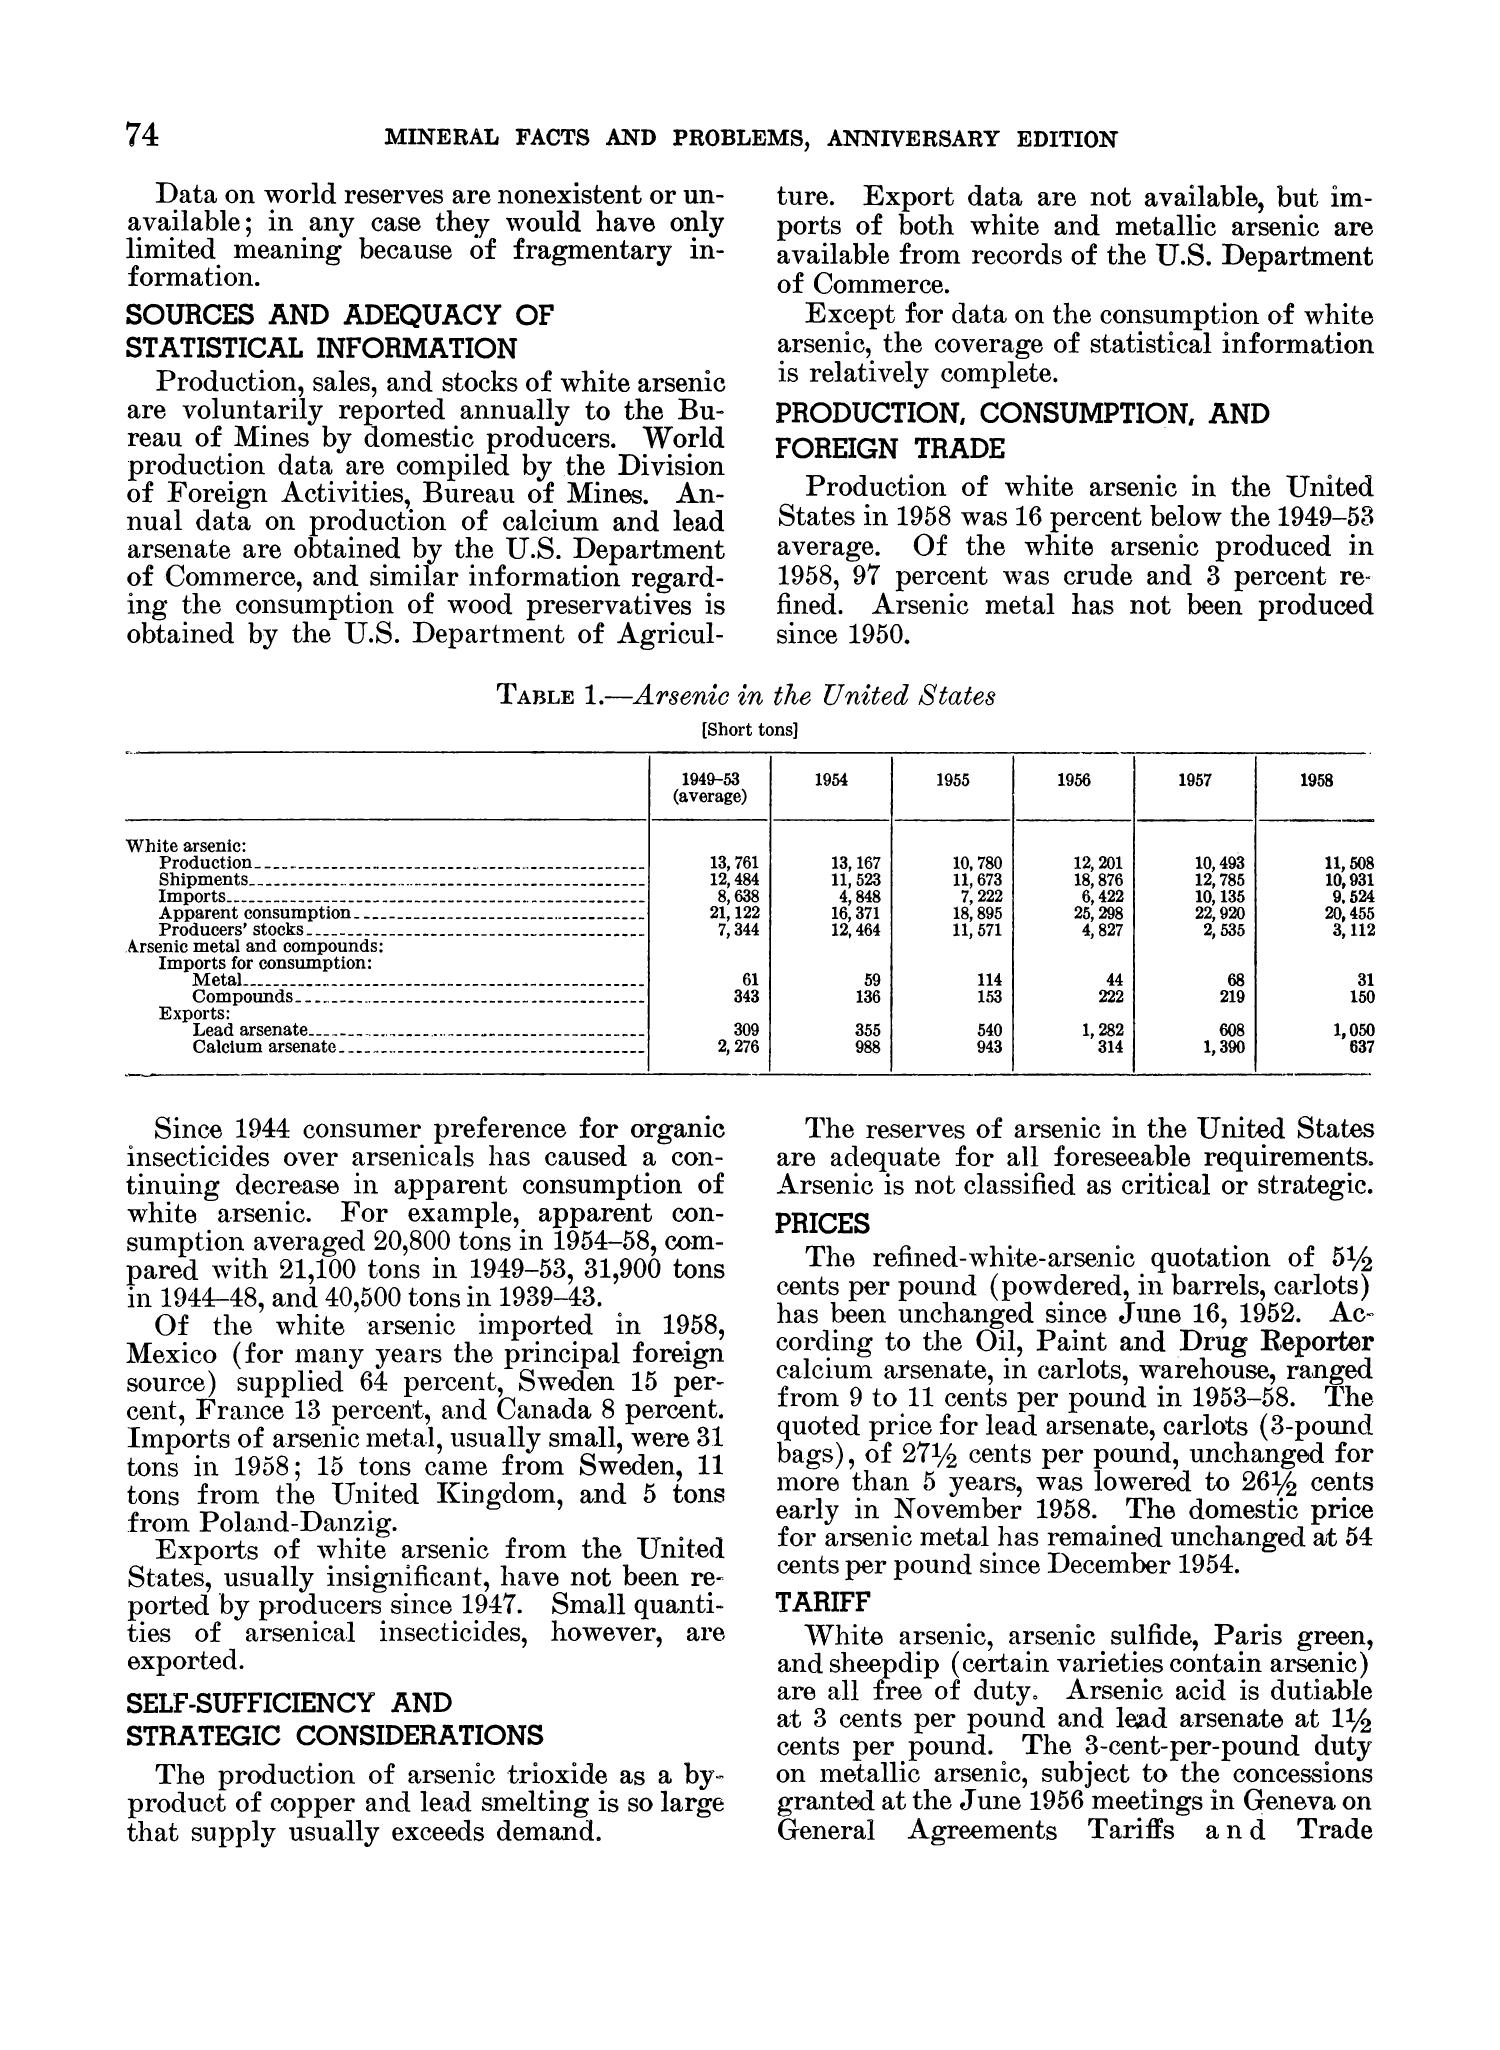 Mineral Facts and Problems: 1960 Edition                                                                                                      74